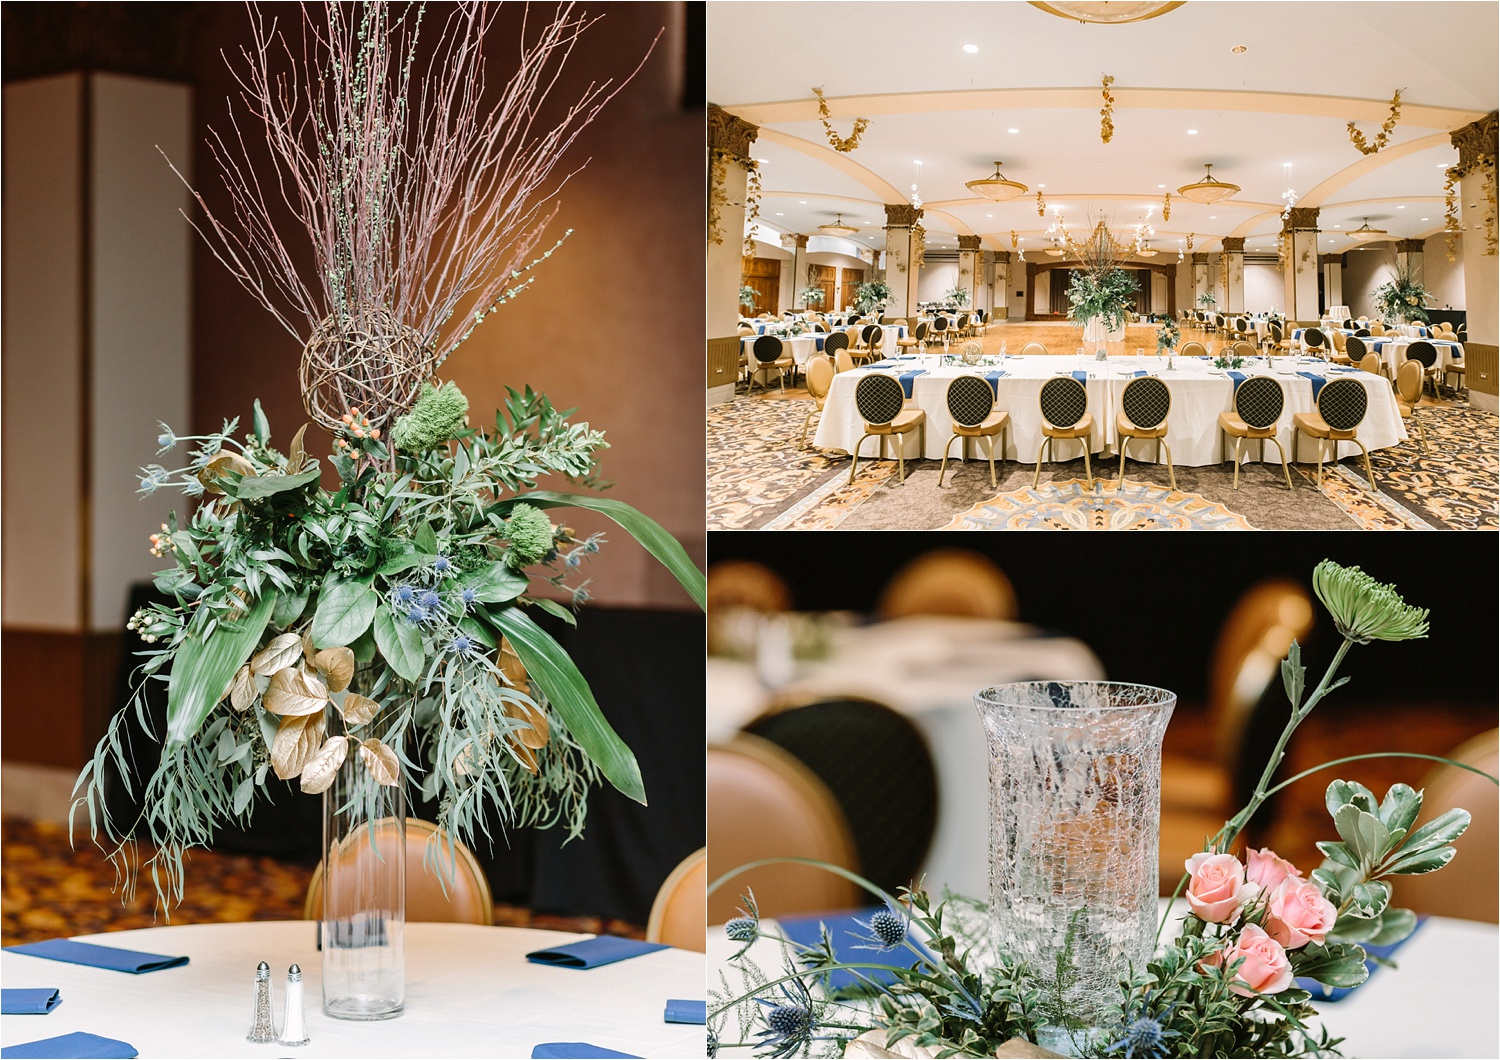 Time for the reception to begin! Have you ever seen more unique centerpieces?